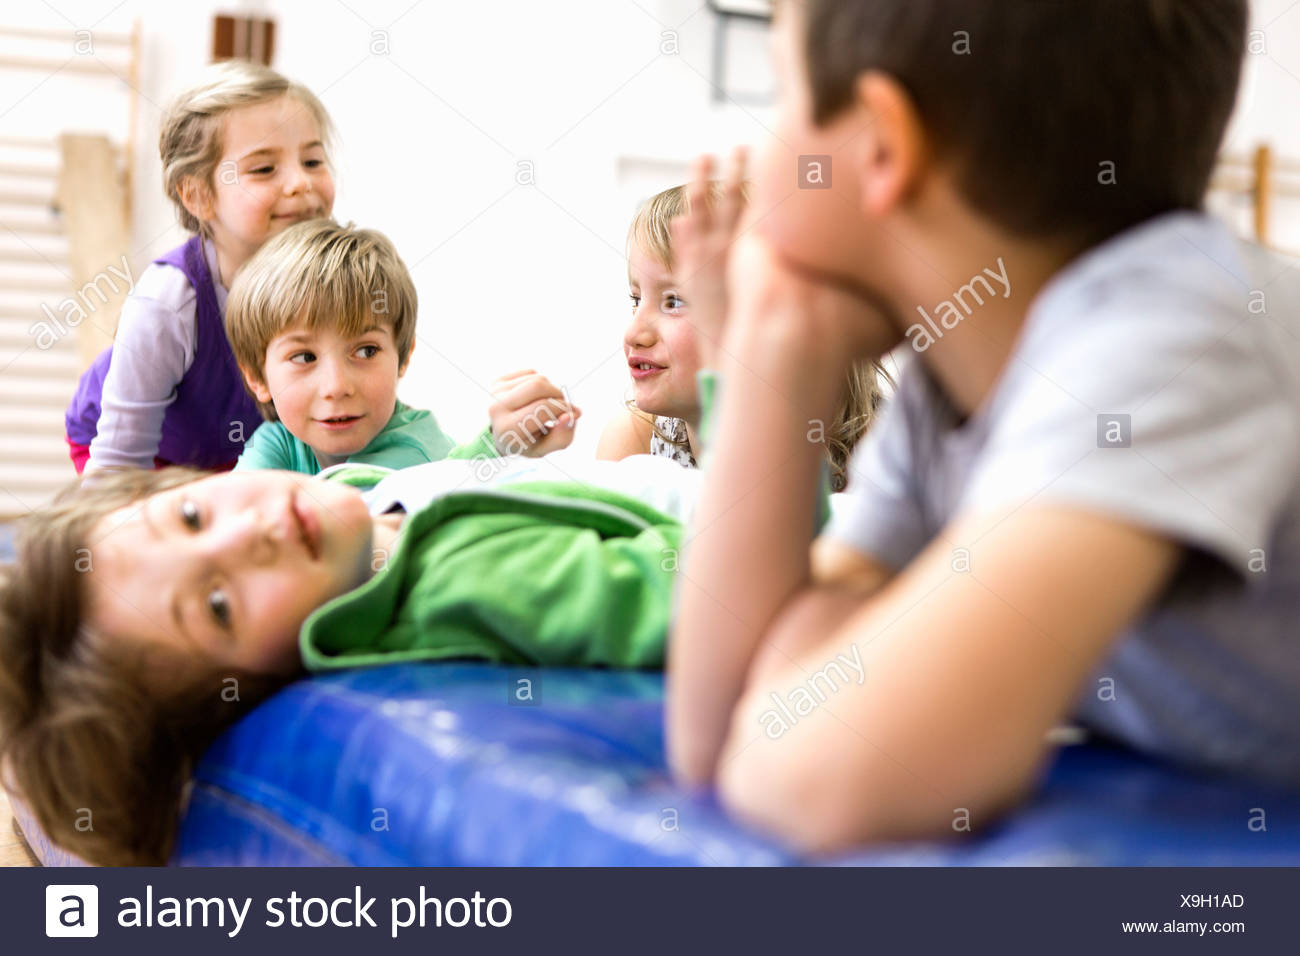 Children sitting and lying on exercise mats - Stock Image